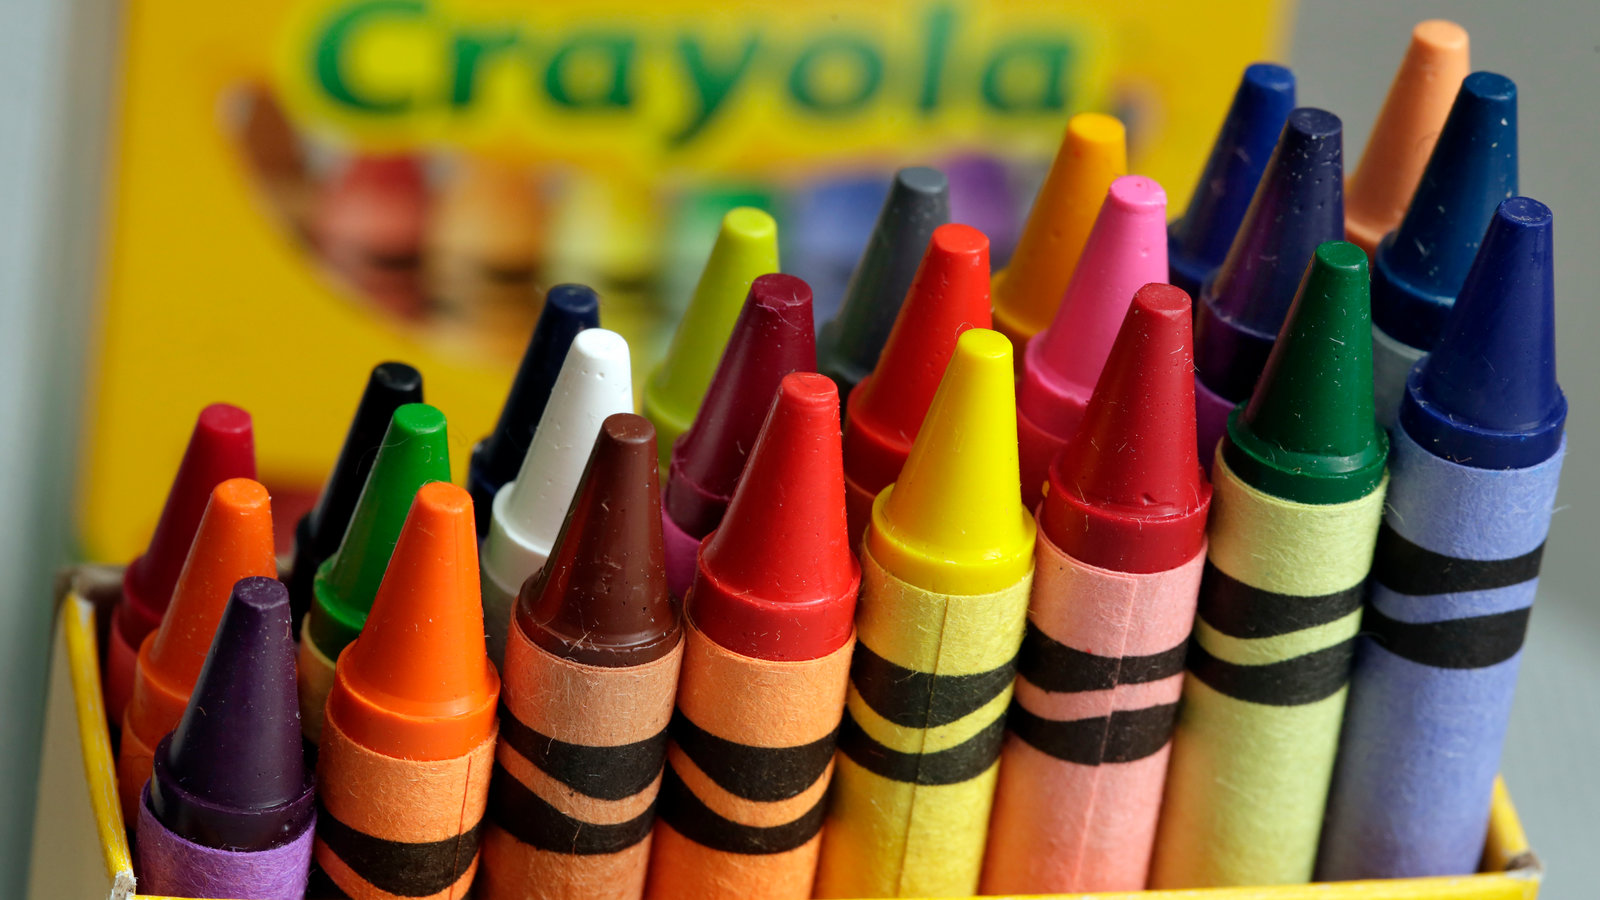 Dandelion Crayon Gets An Early Retirement From Crayola